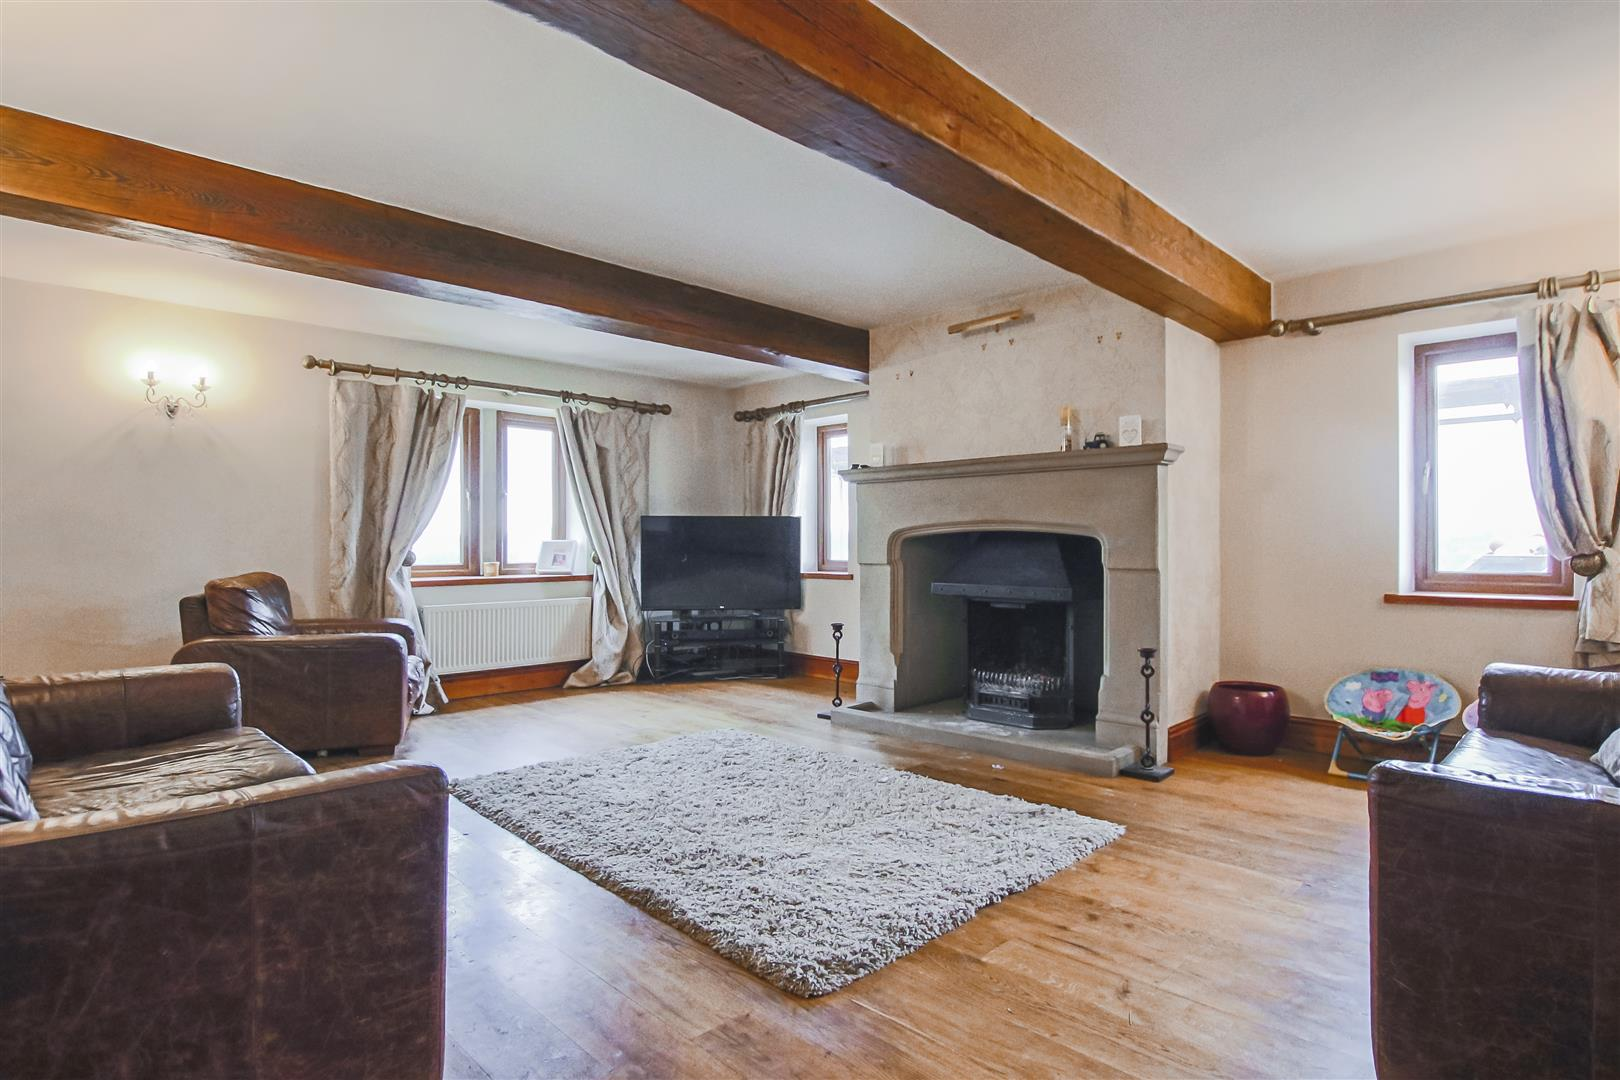 5 Bedroom Barn Conversion For Sale - Image 37